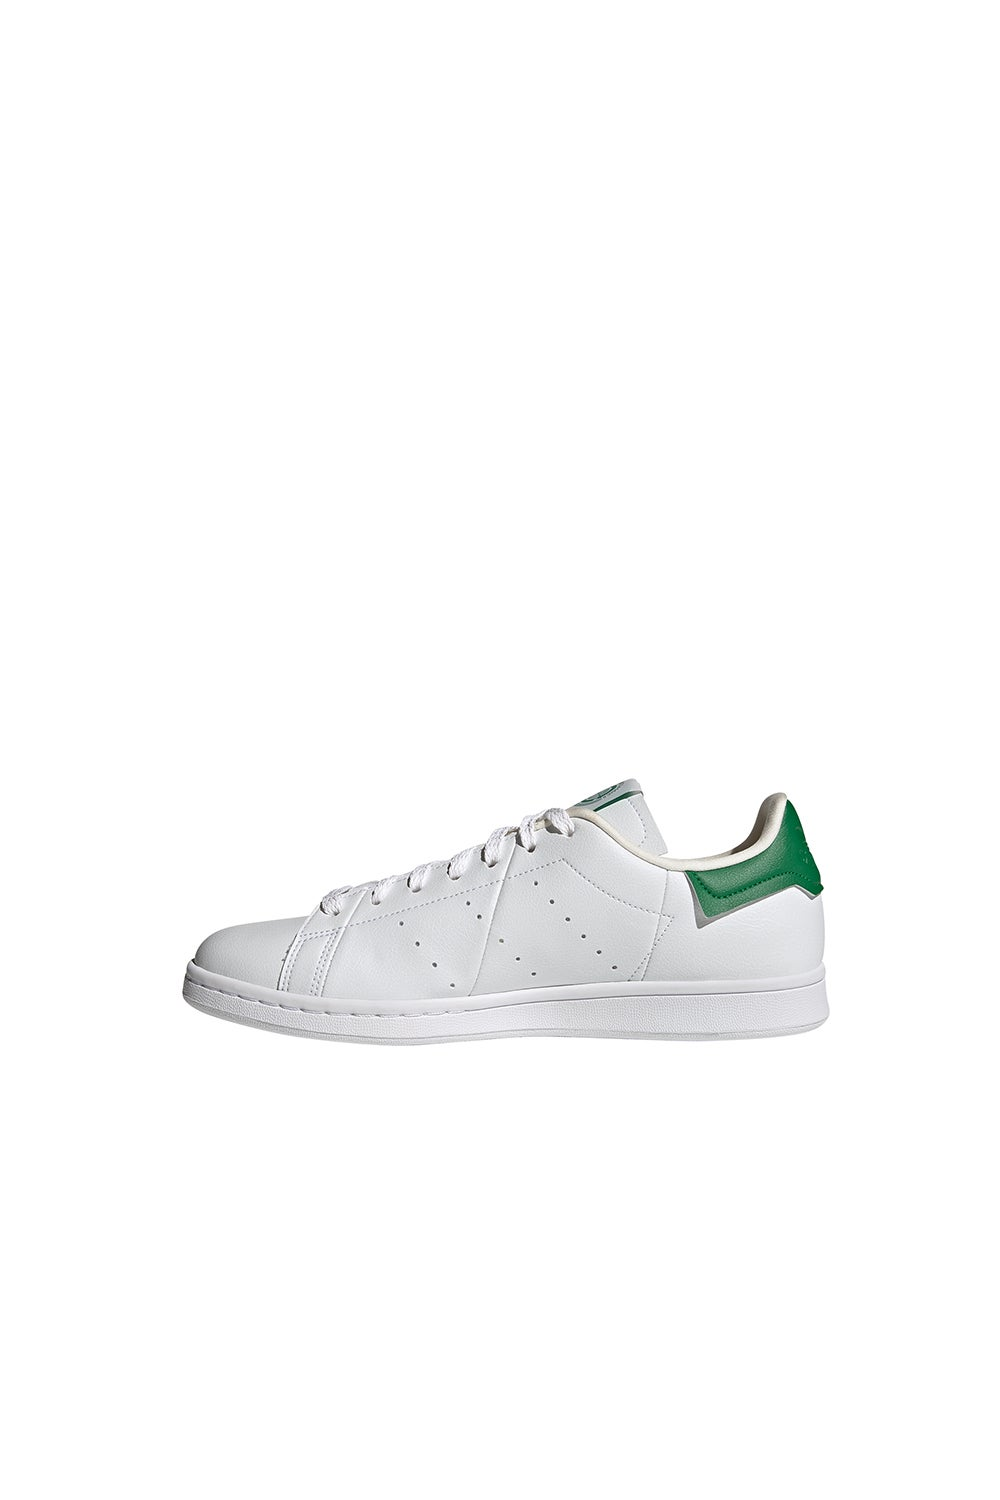 adidas Stan Smith FTWR White/Off White/Green